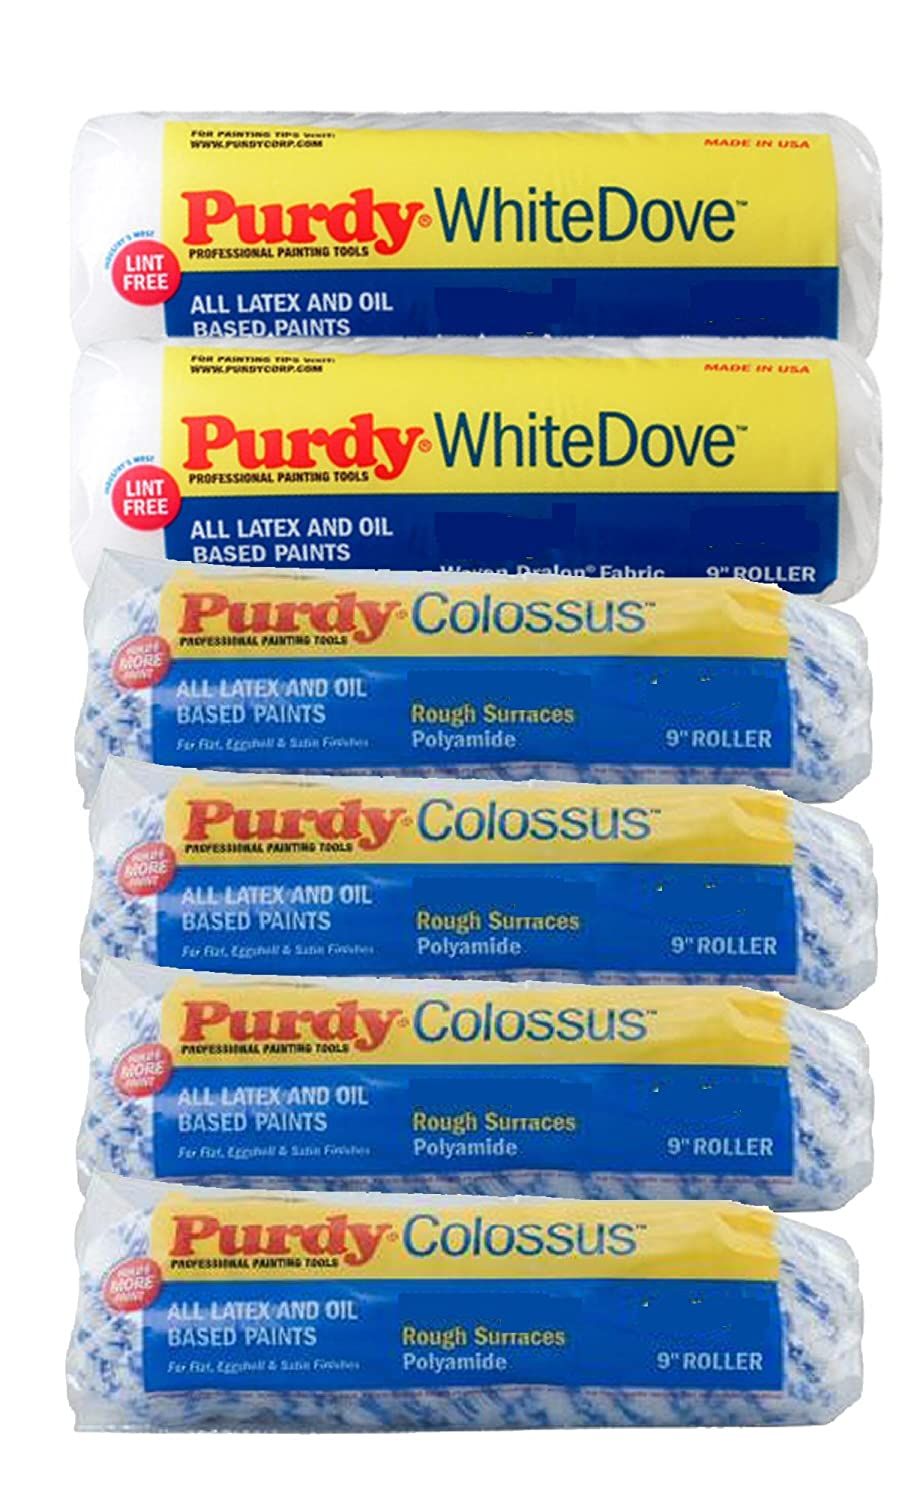 PURDY 9' Roller Sleeves 6-PACK - 4x Colossus & 2x White Dove ROLLER6PK